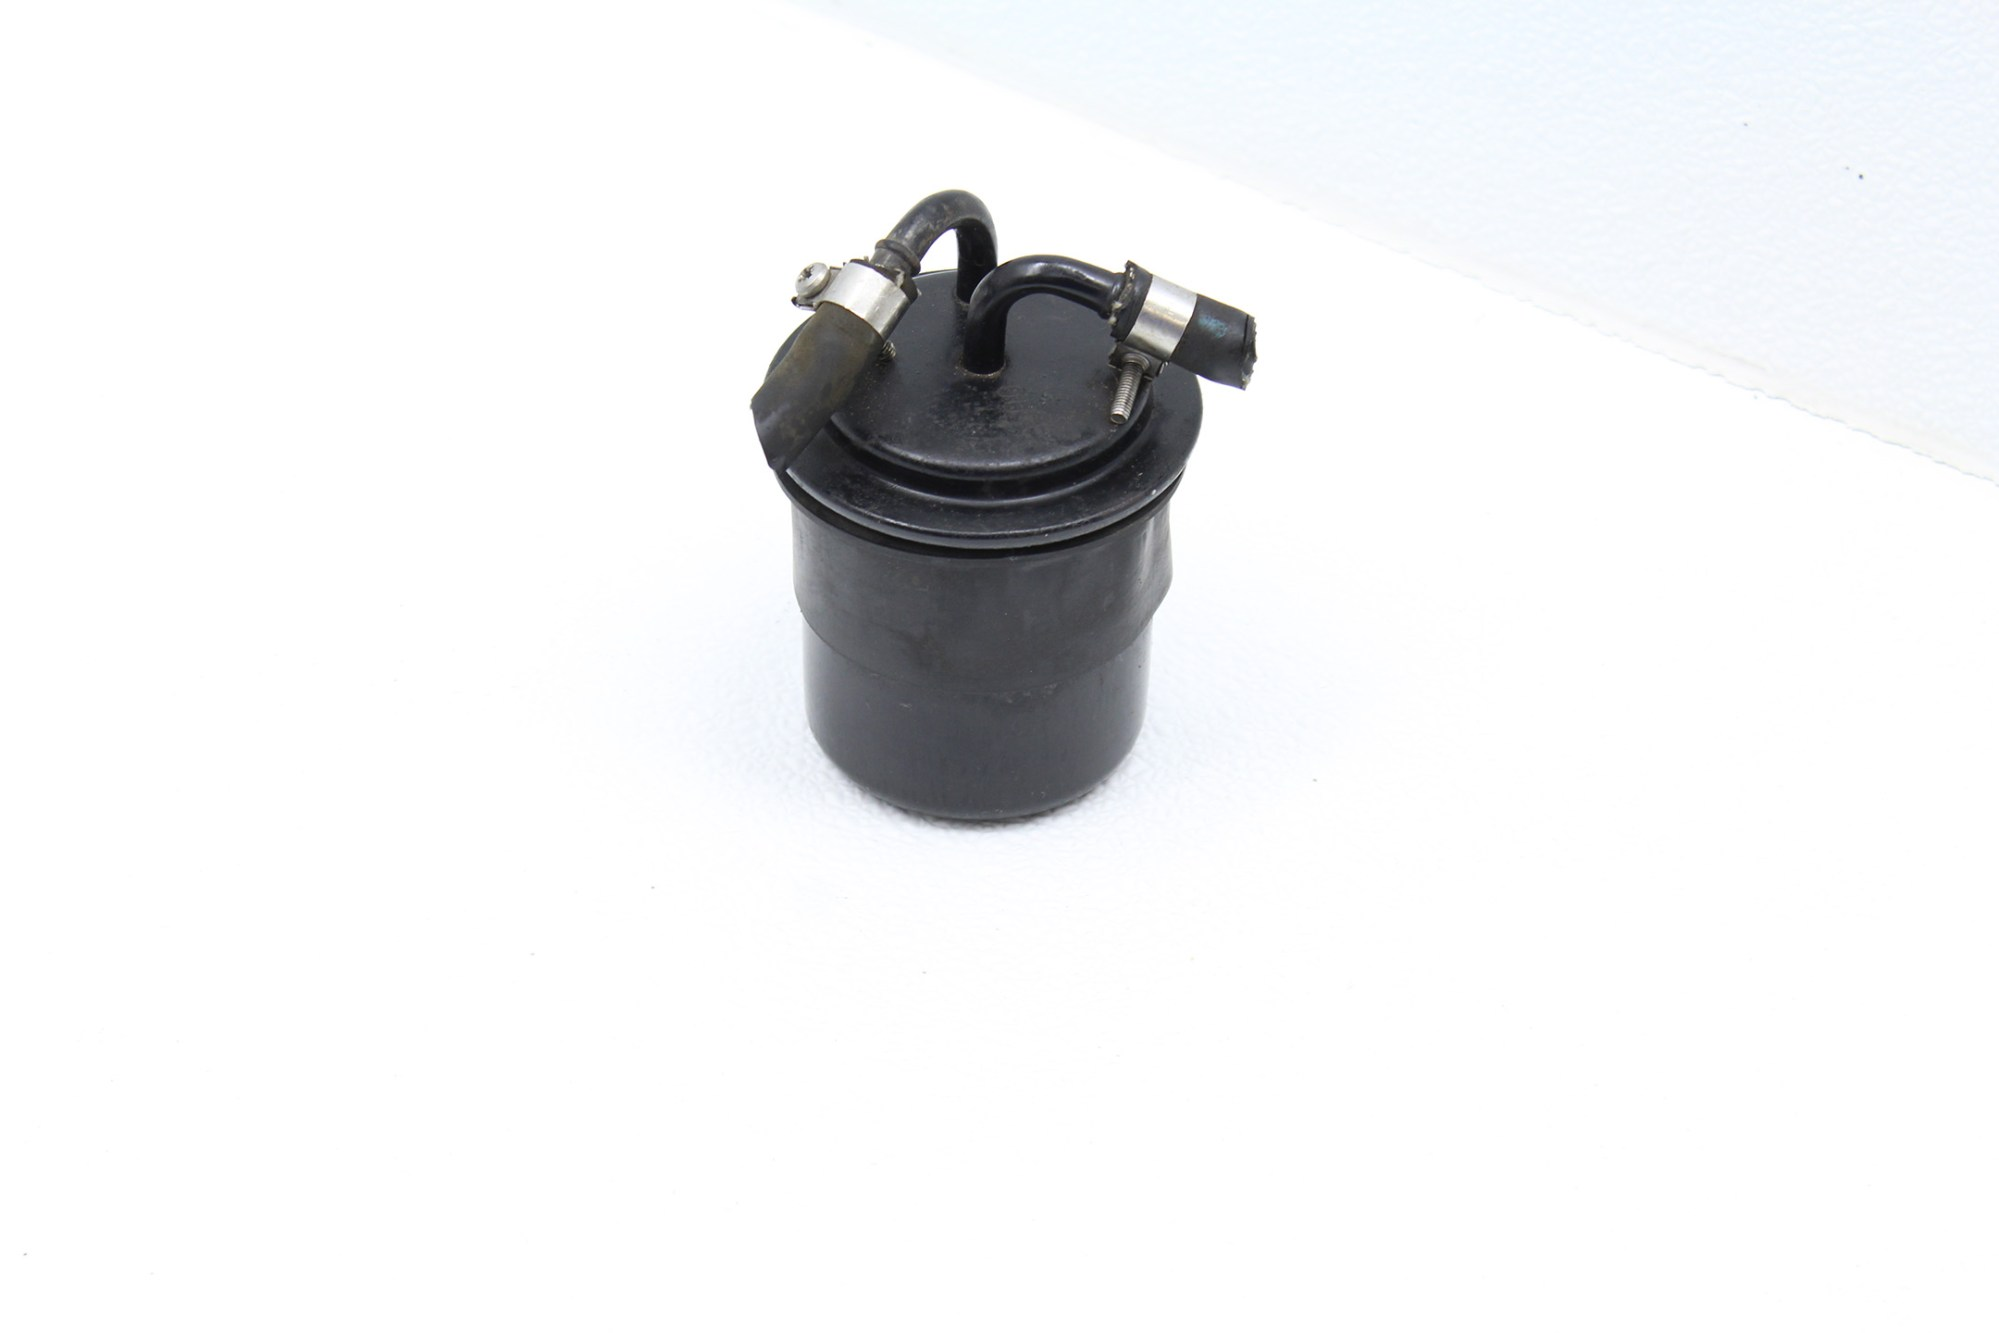 hight resolution of 1998 2001 subaru impreza 2 5 rs gc8 fuel filter assembly